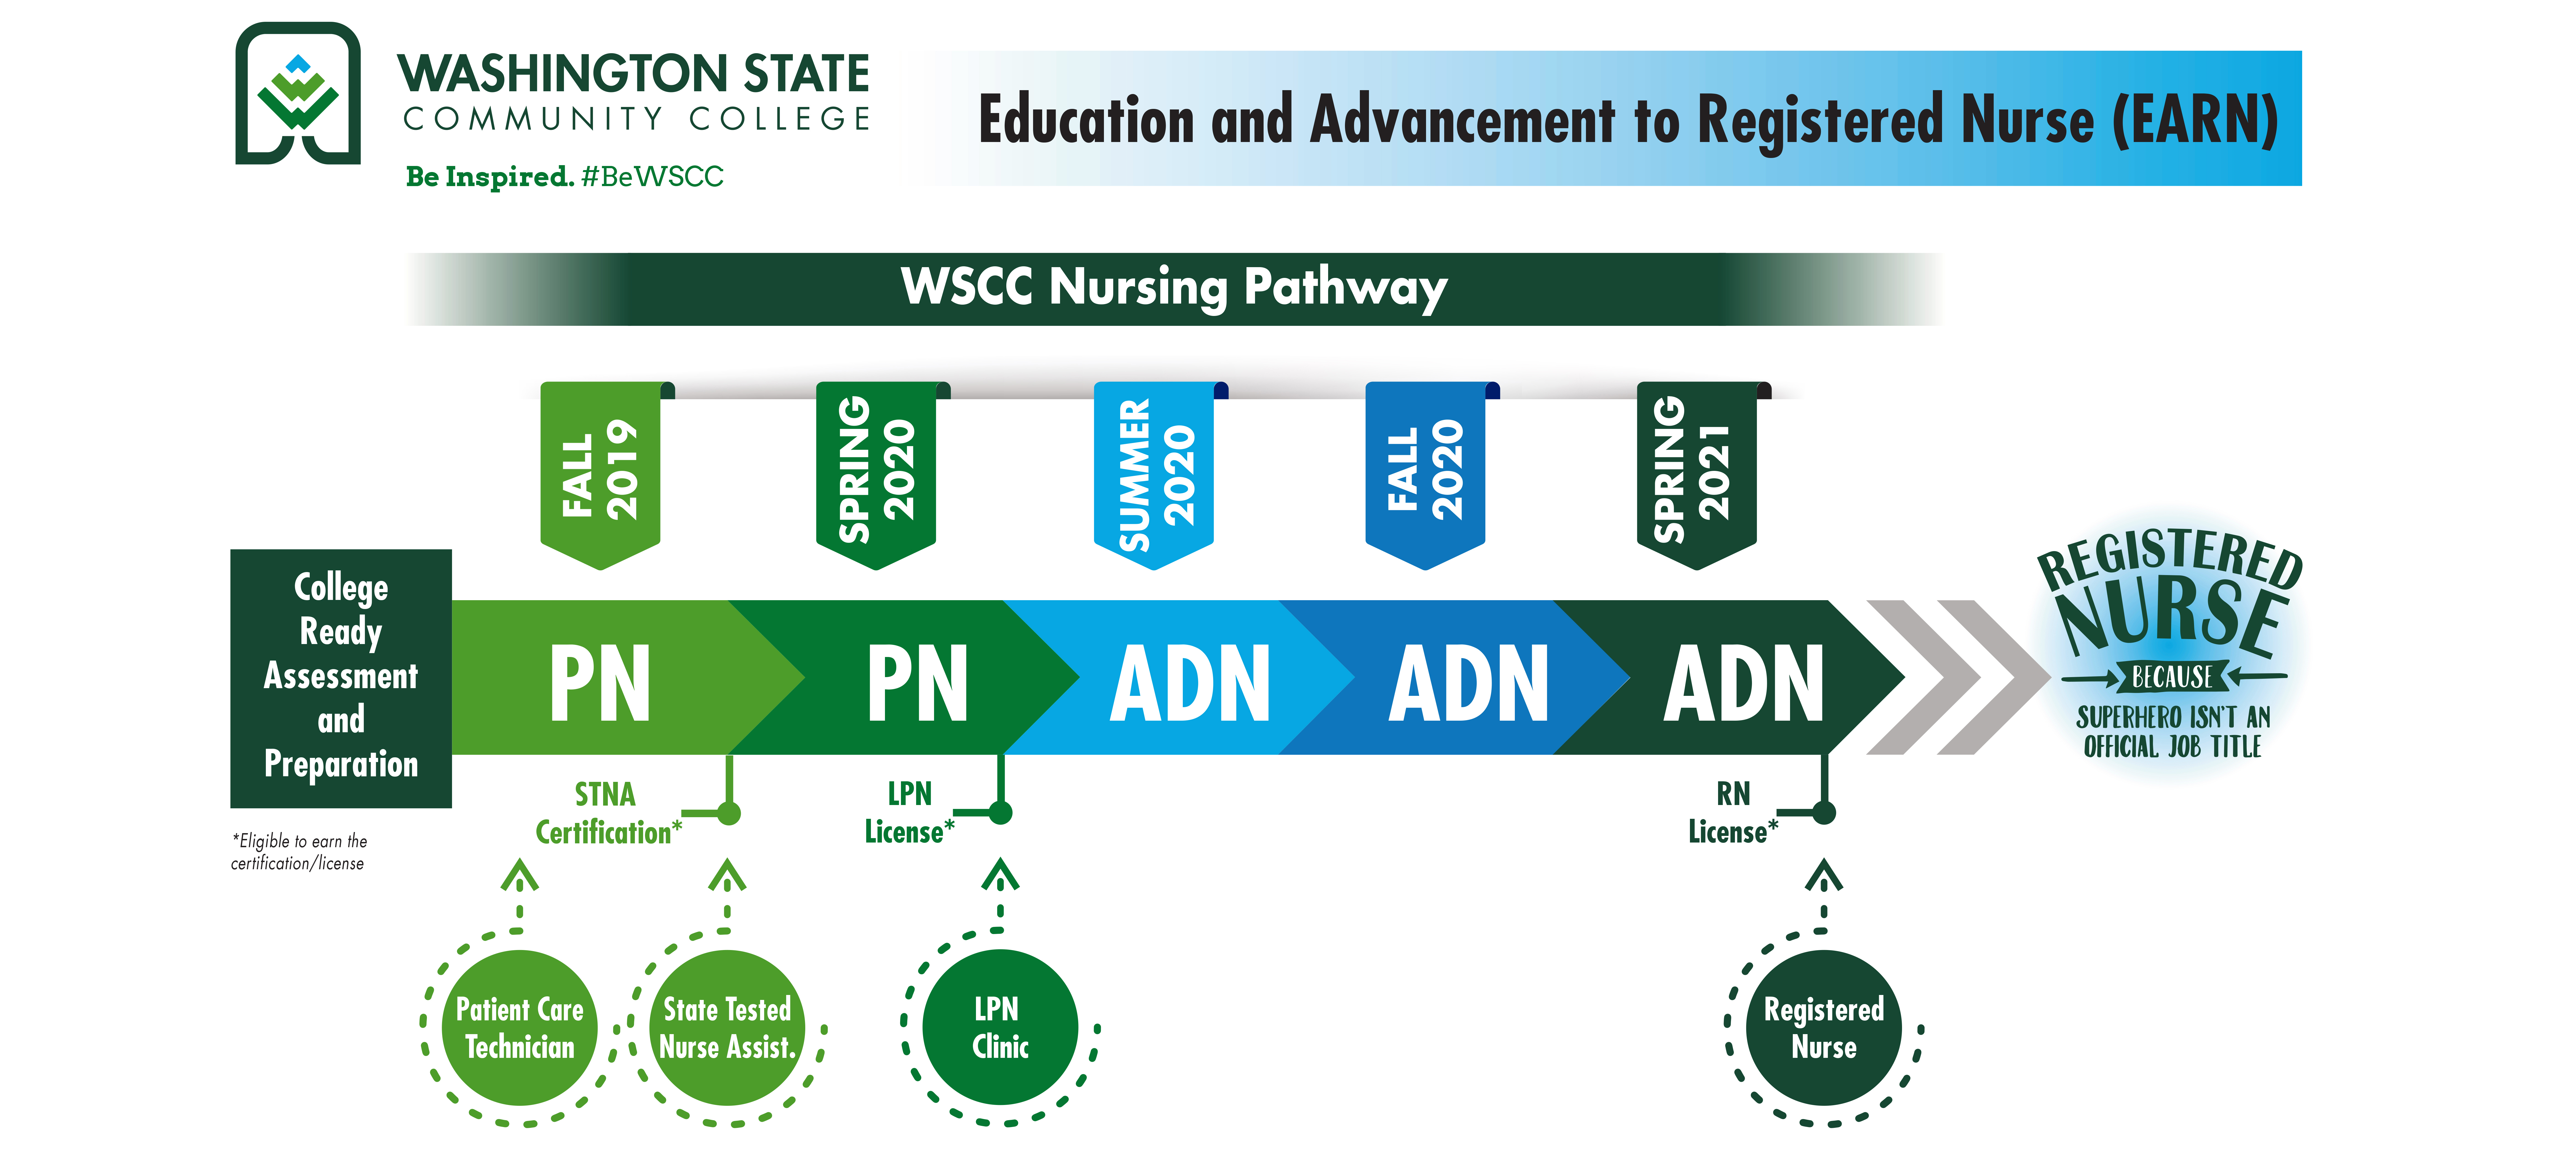 Washington State Community College (WSCC) was recently awarded a $50,000 grant from the Bernard McDonough Foundation. The funds will support EARN, a new initiative by the college intended to address the increased demand for nurses in the Mid-Ohio Valley.